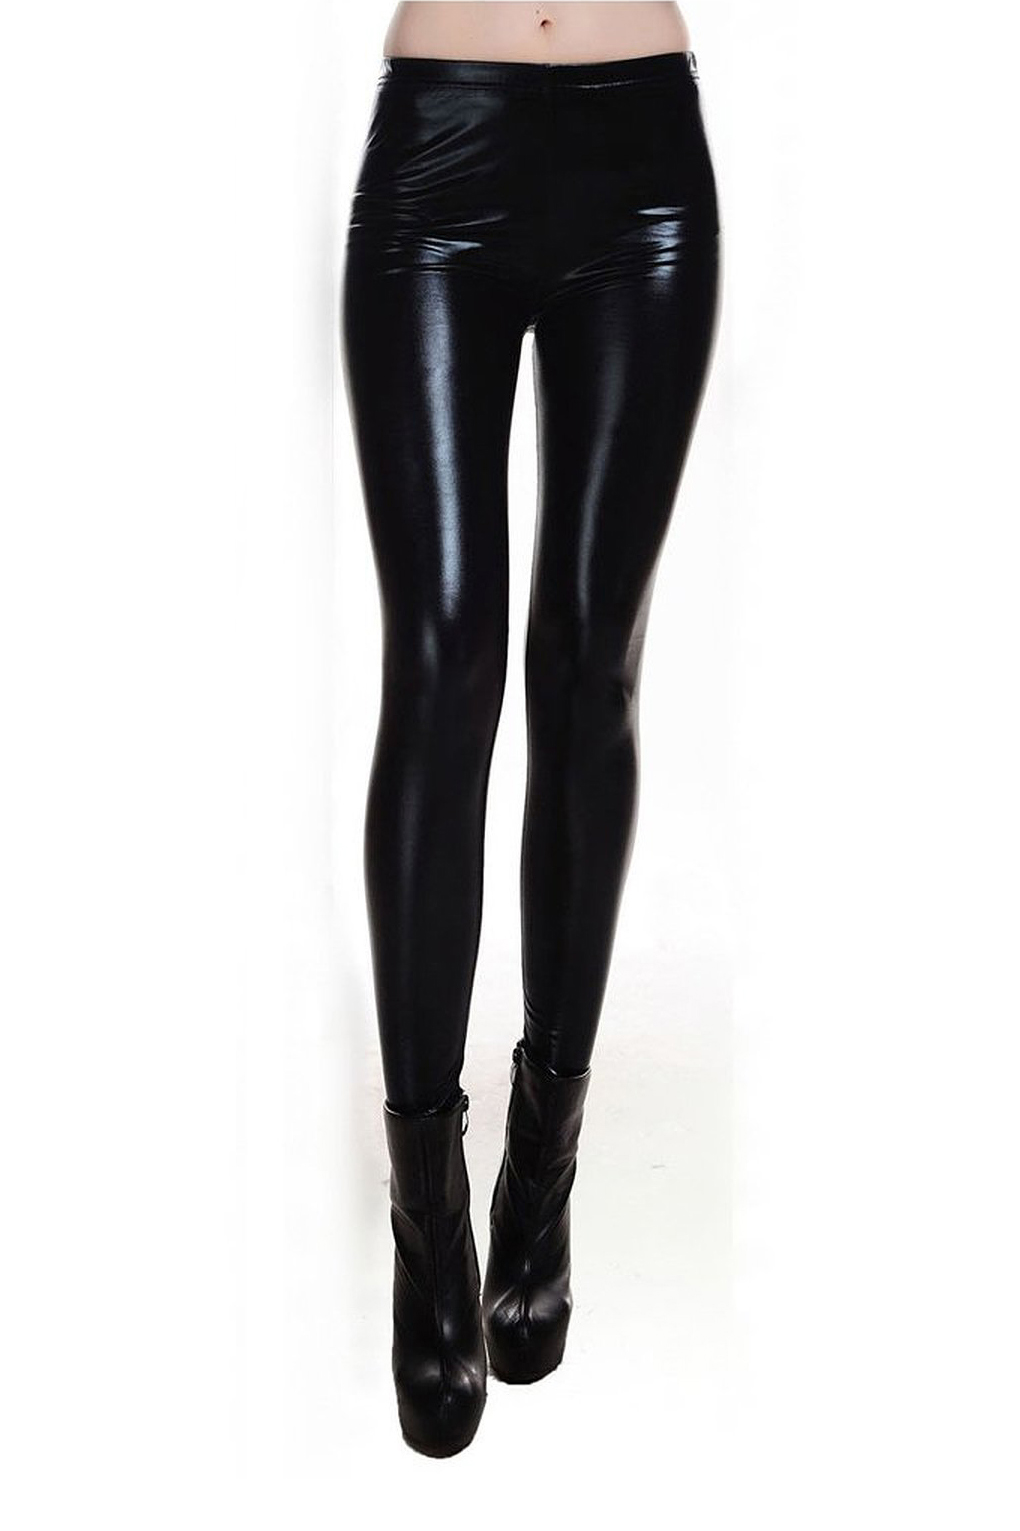 New Hot Metallic Wet Look Liquid   Leggings   Shiny Stretch Women Pencil Pants Gold Black Green